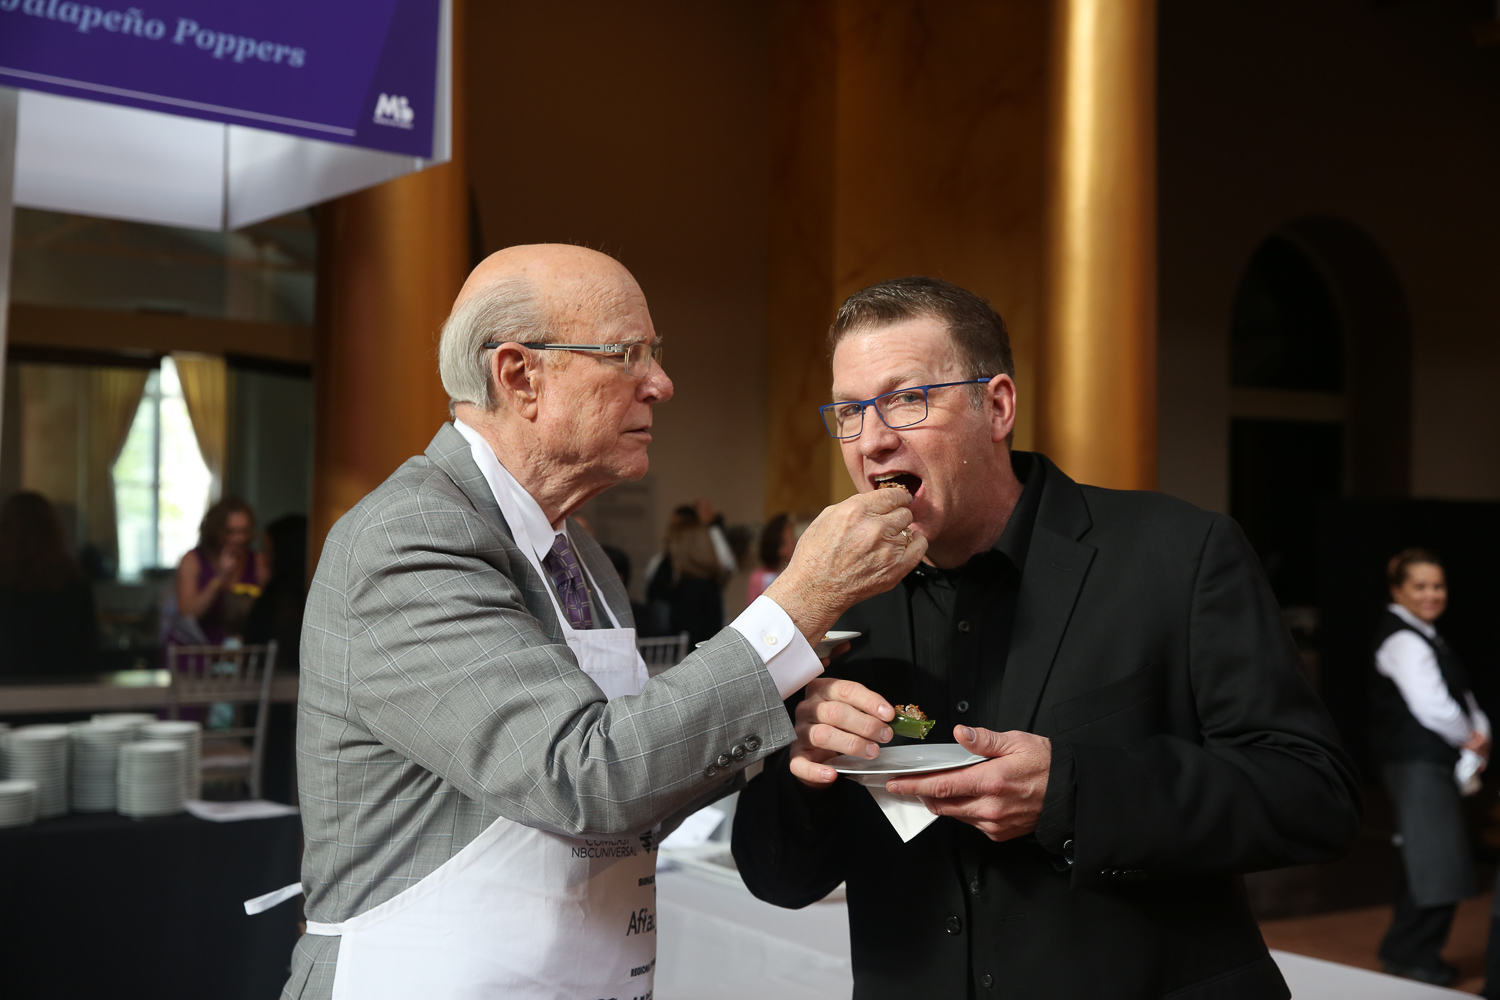 Sen. Pat Roberts feeds a judge his Kansas Jalepeno poppers. (Amanda Andrade-Rhoades/DC Refined)